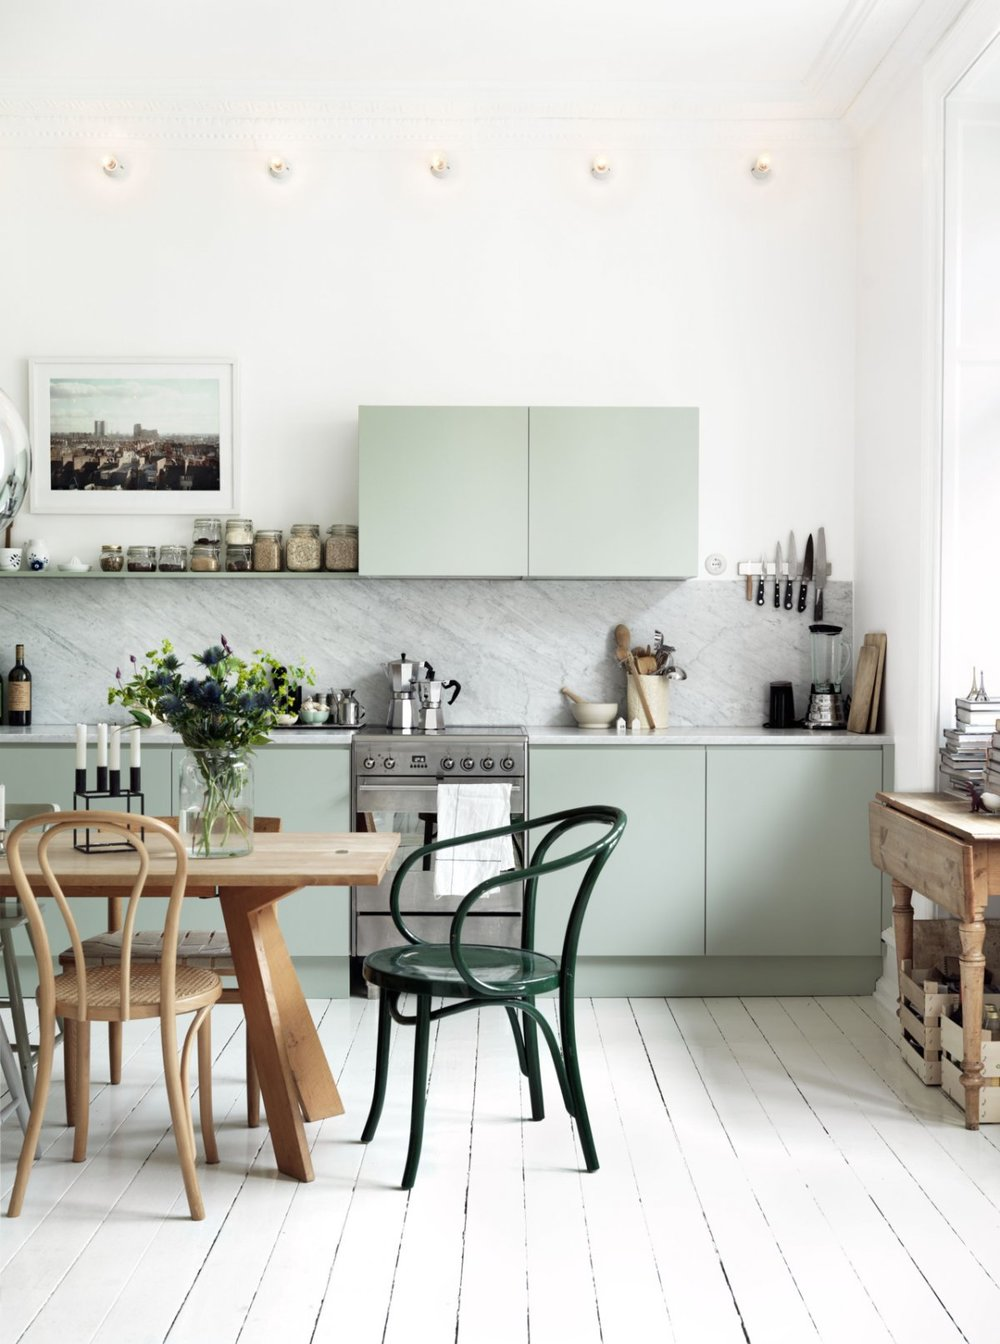 stylish-scandinavian-style-kitchen-tables-1025x768-together-with-gorgeous-scandinavian-kitchen-decorations-interior-photo-scandinavian-style.jpg